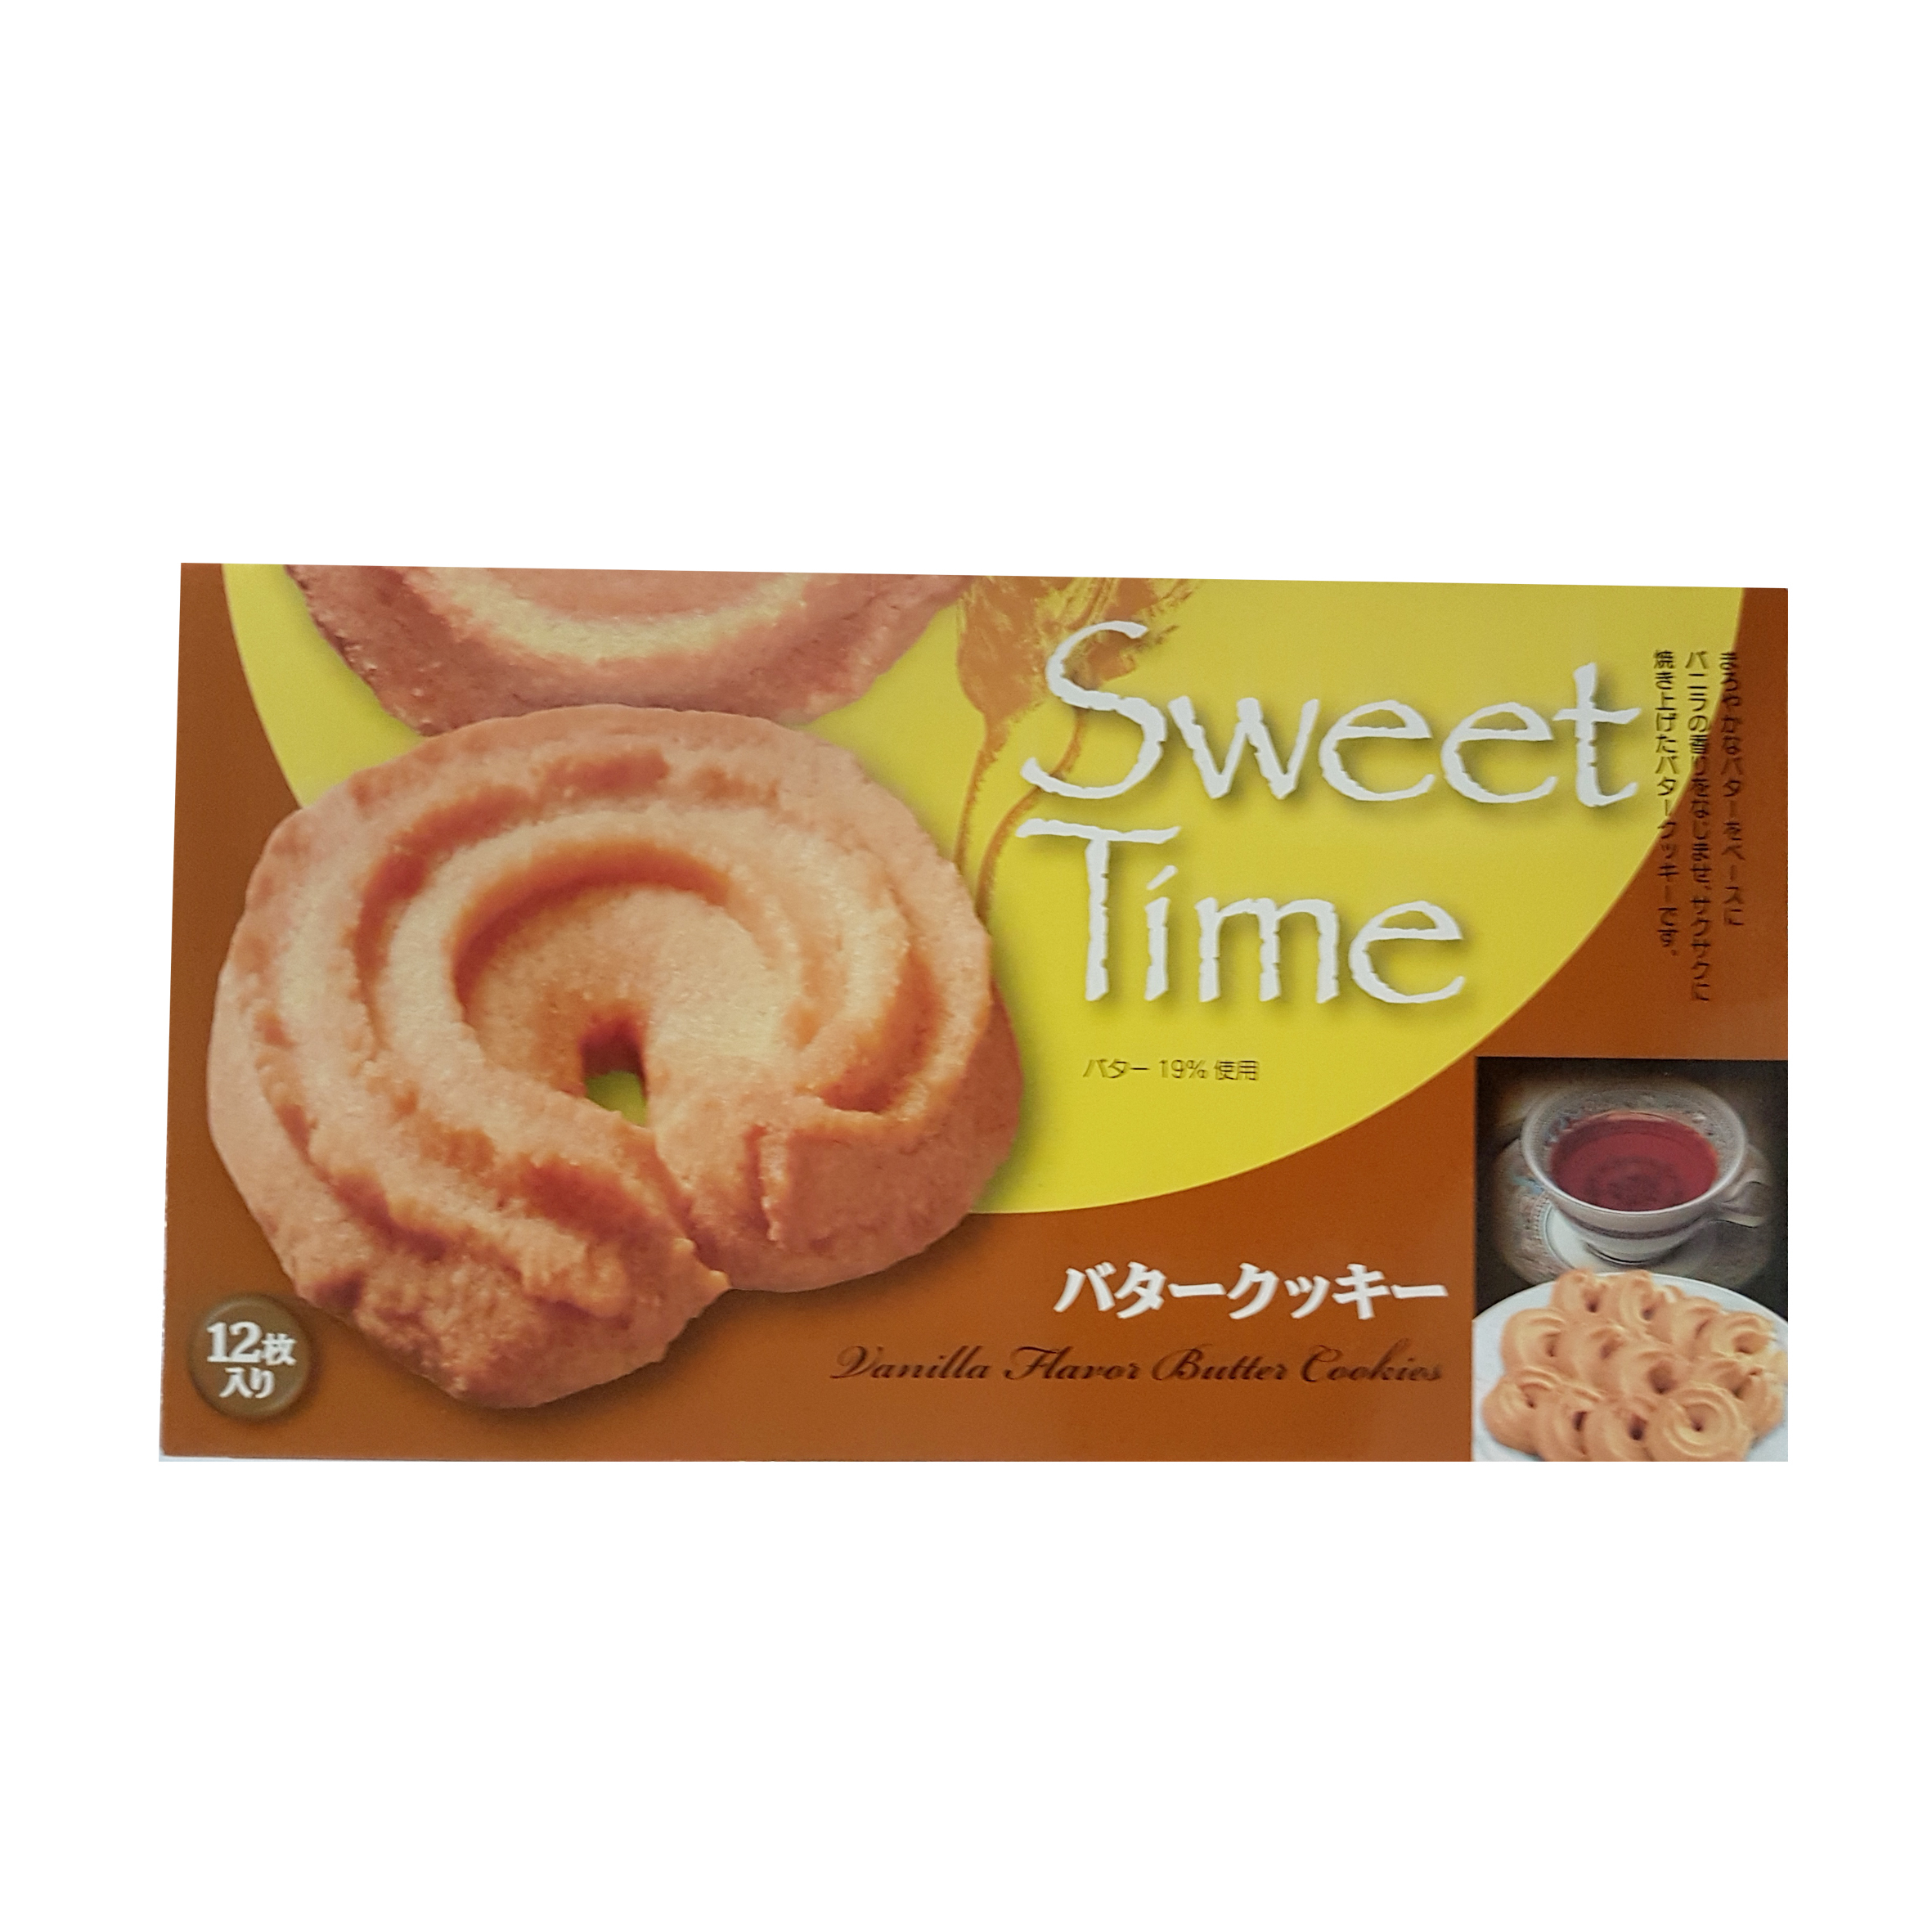 Sweet Time Brown.jpg